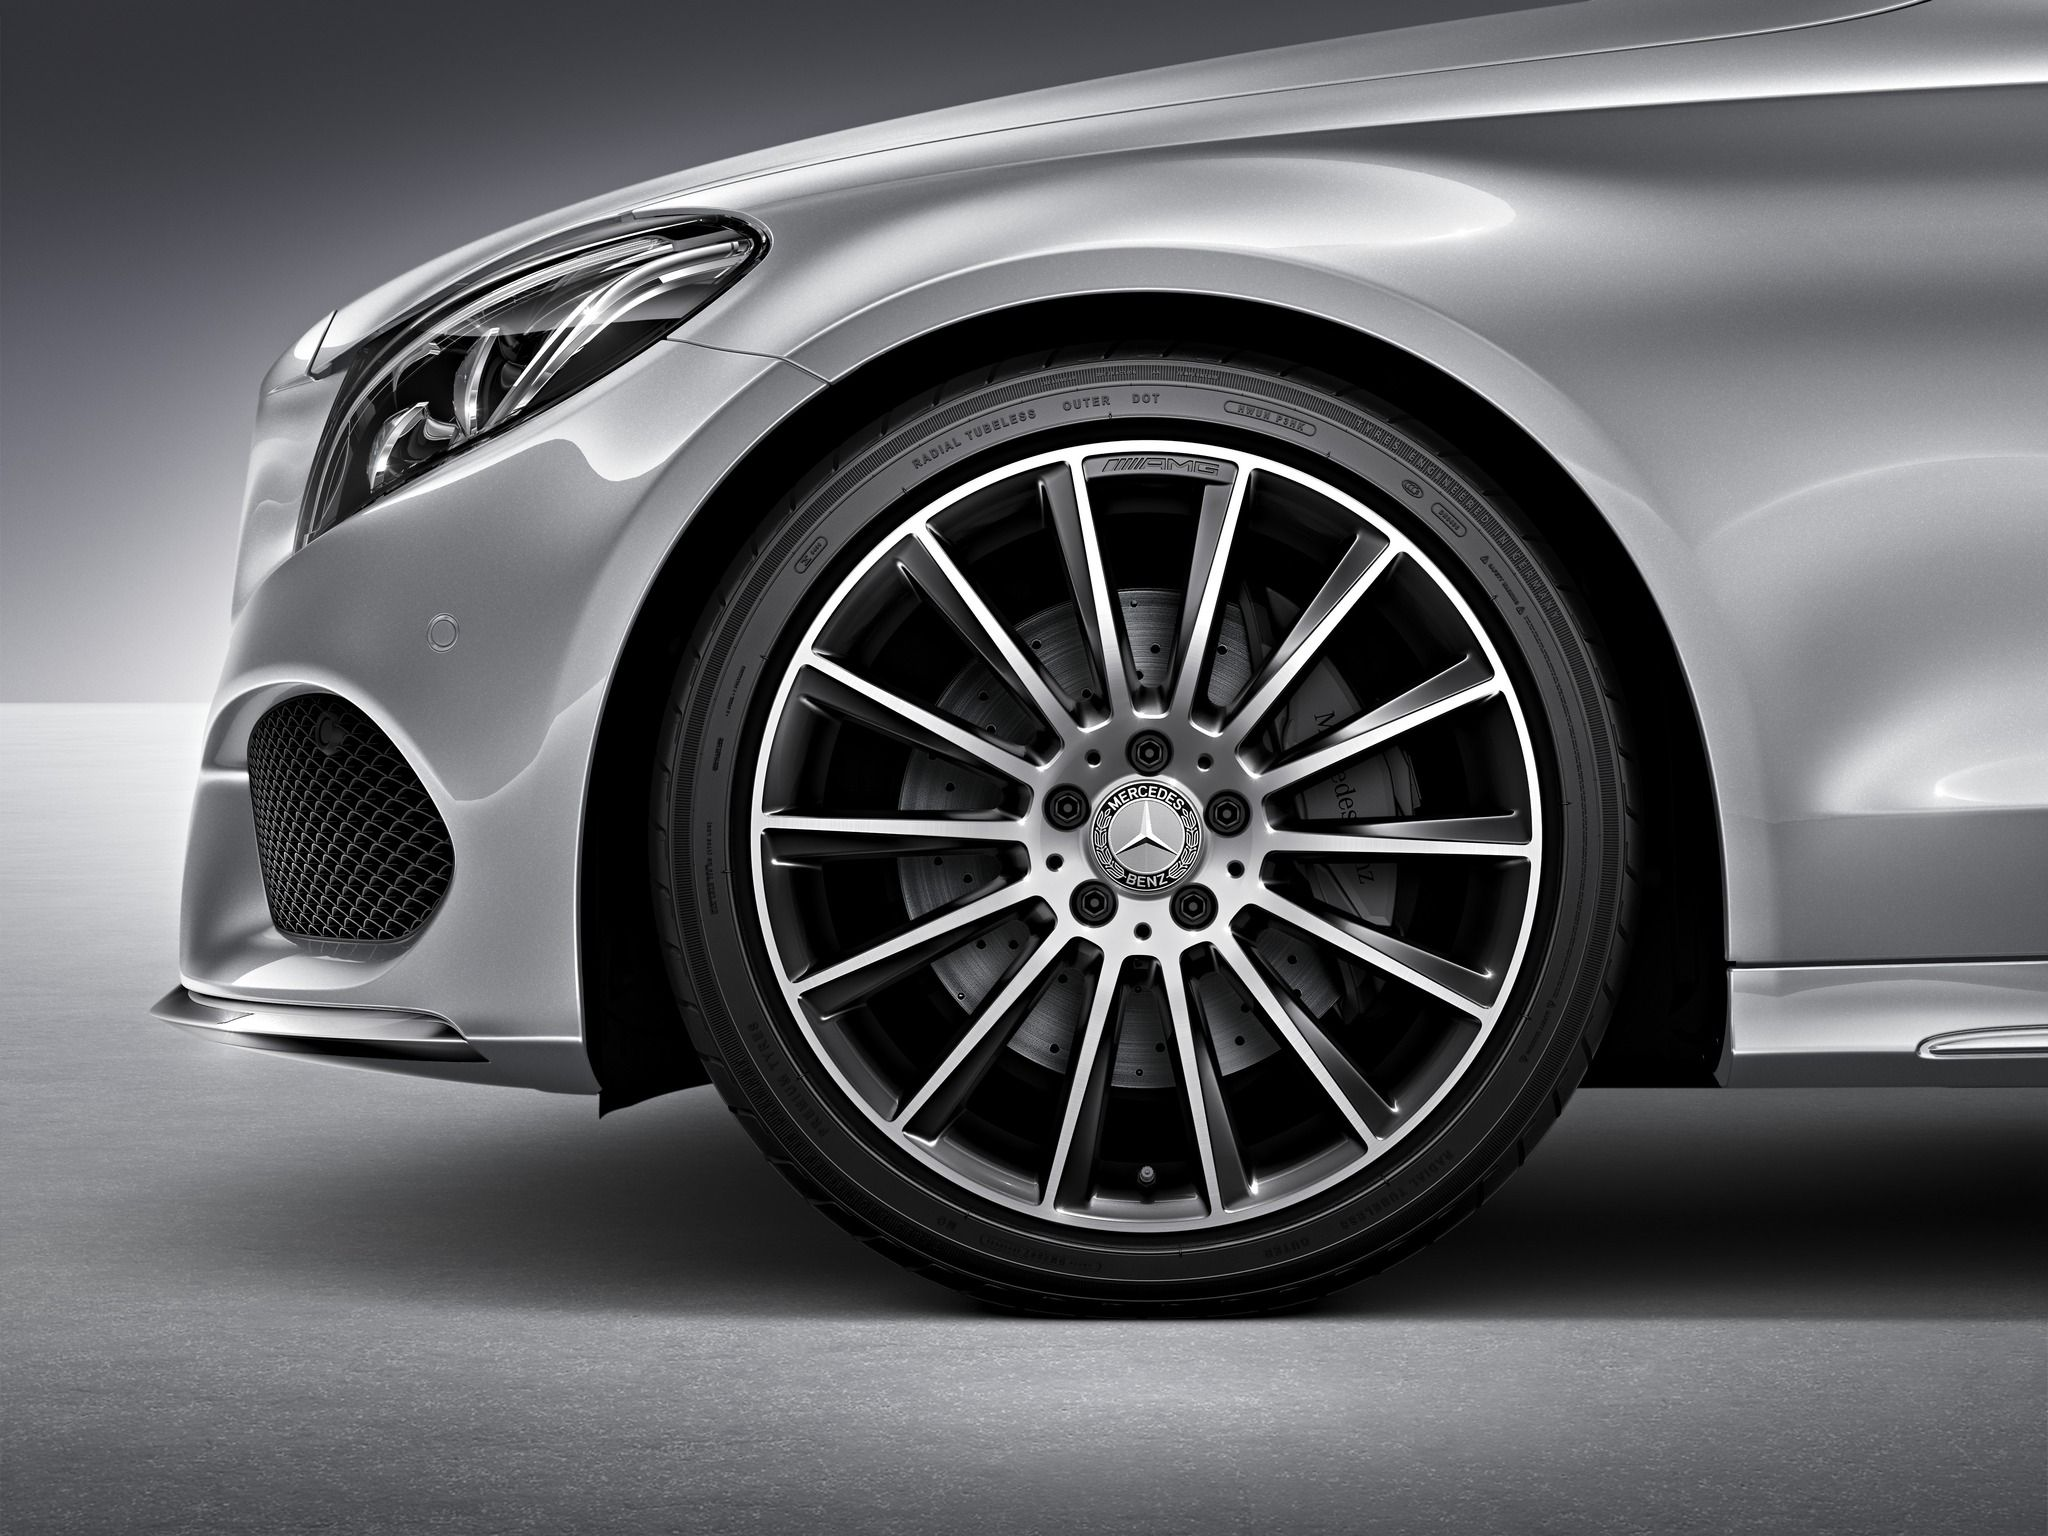 19 inch mercedes wheel sets The Impact of Mercedes Wheel Sets to Emission and Fuel Consumption